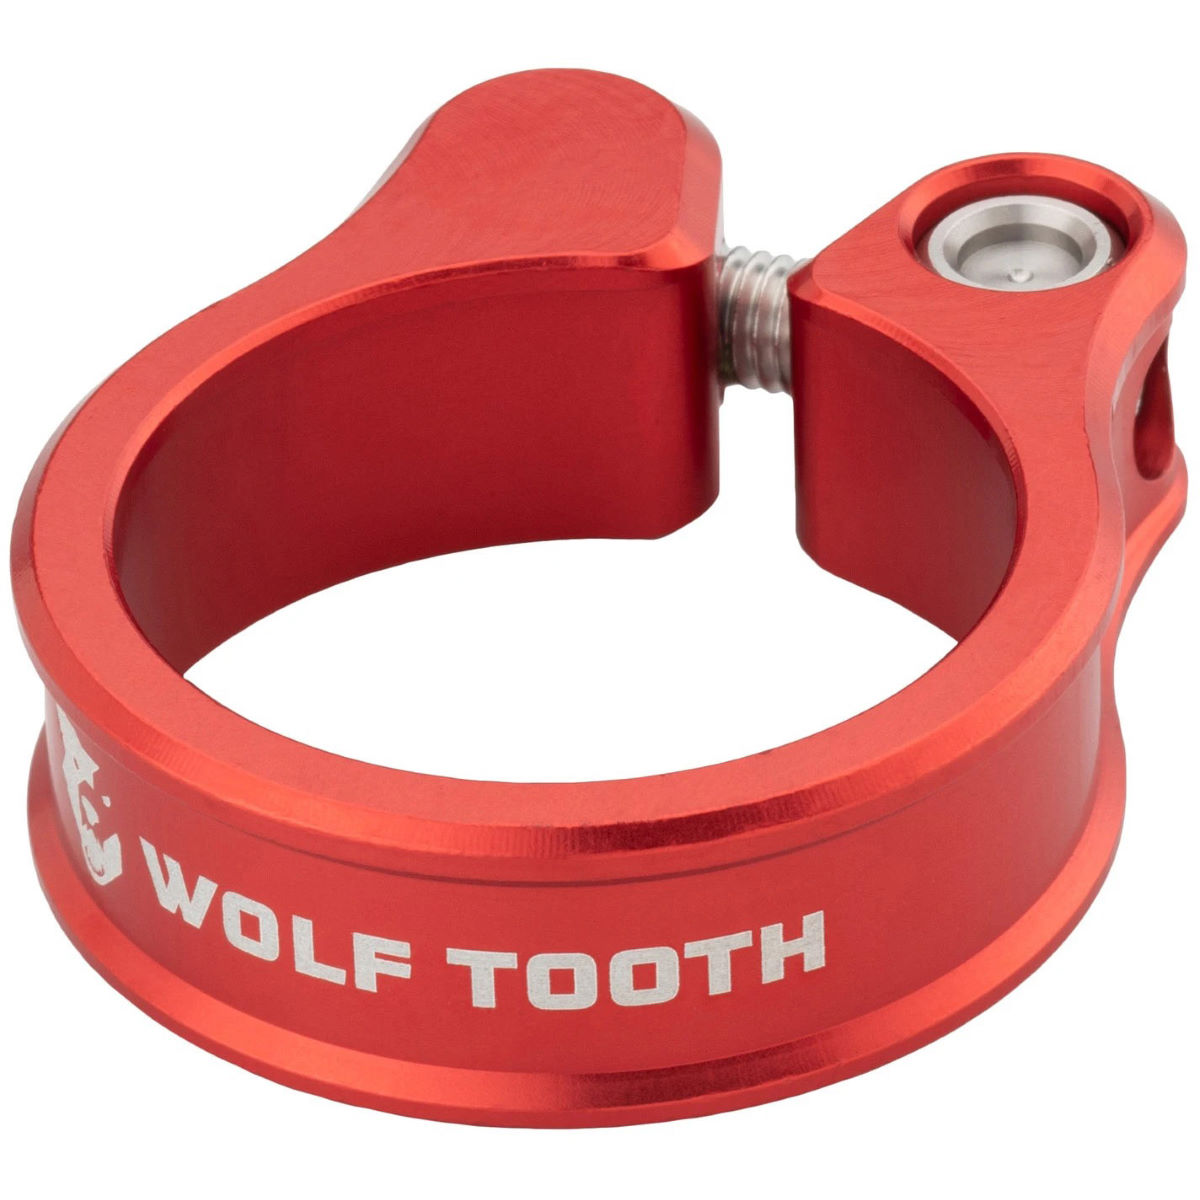 Wolf Tooth Seatpost Clamp - 34.9mm Red  Seat Post Clamps